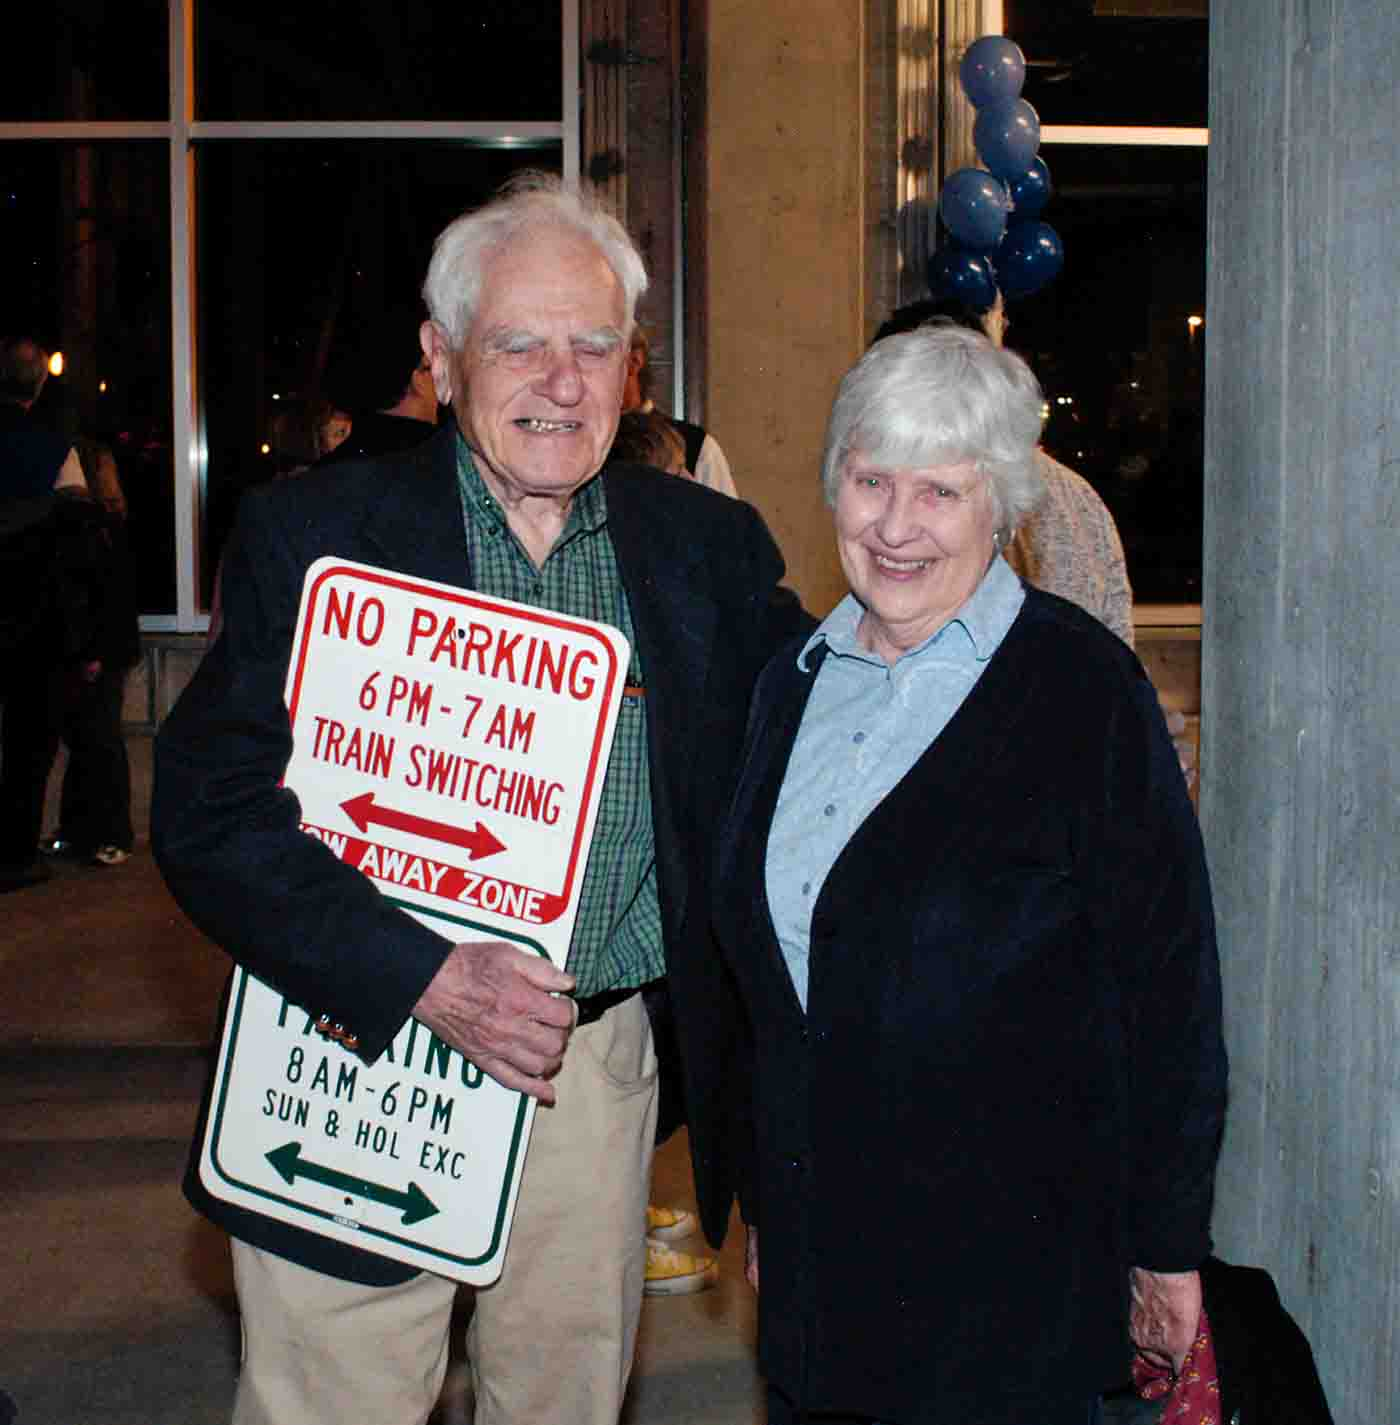 Salzman, couple, sign